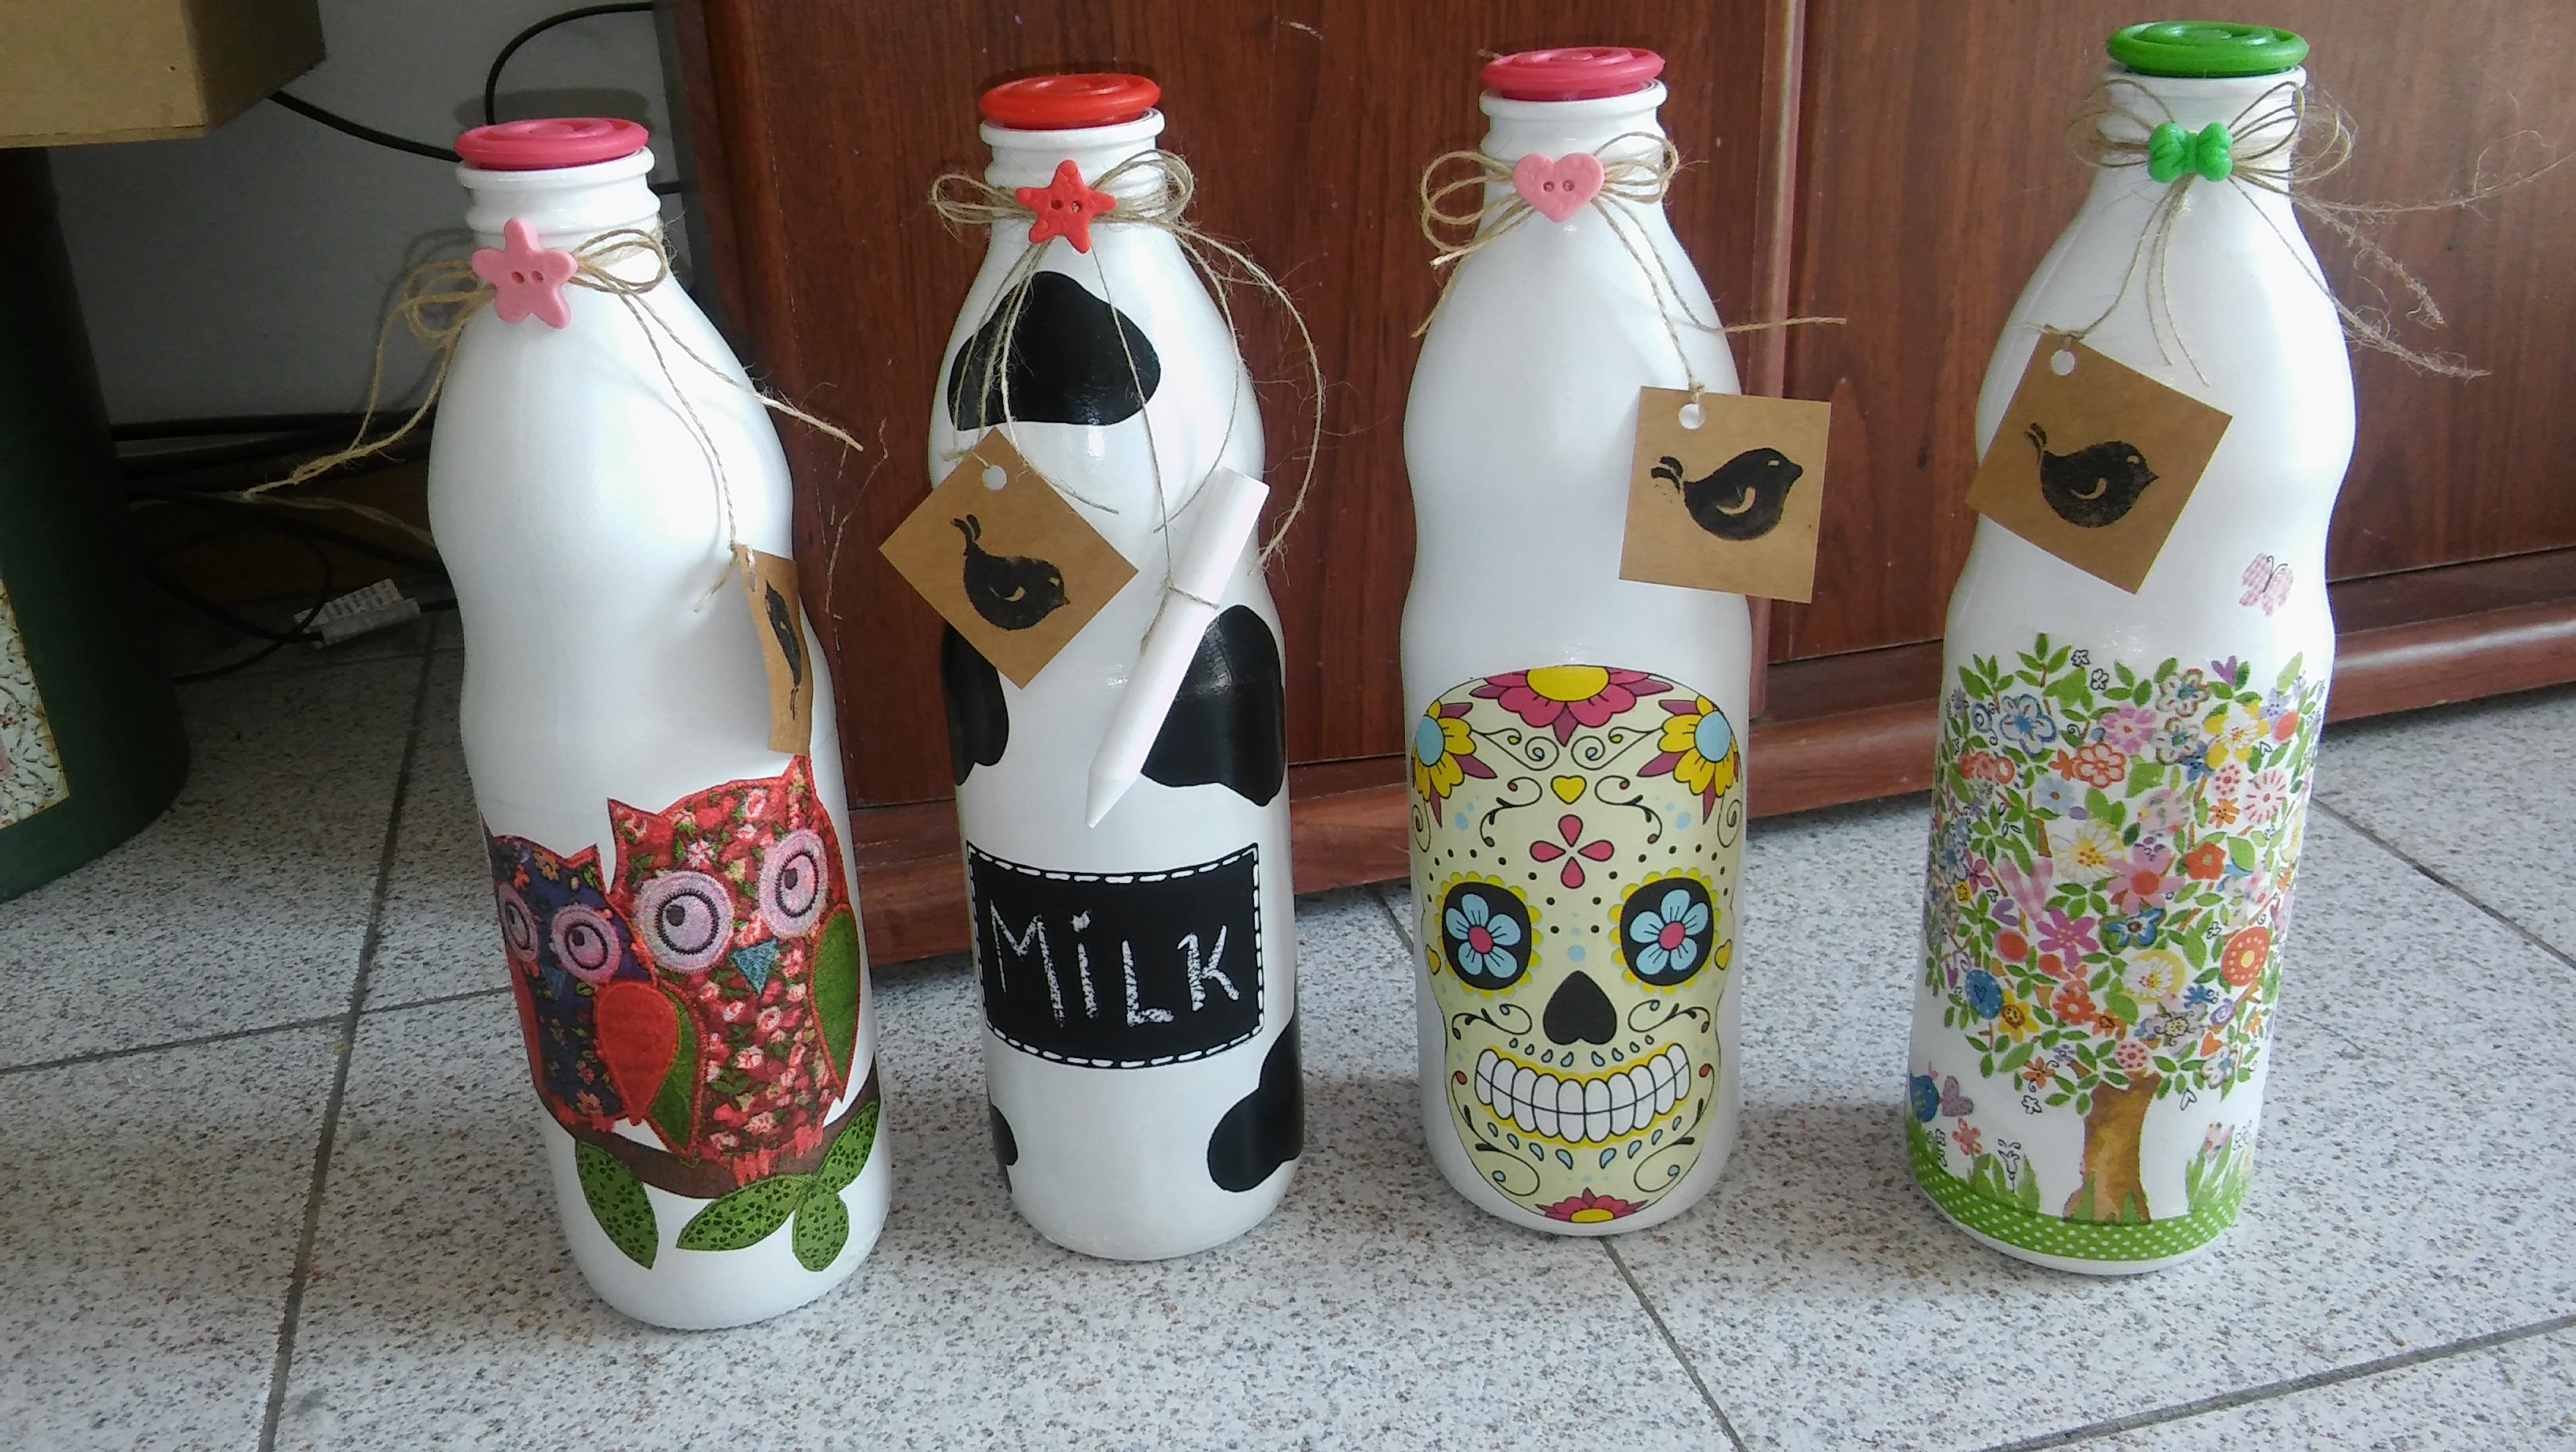 Comprar Botellas Decoradas Botellas Pintadas Y Decoupage Fridas Deco Elo7